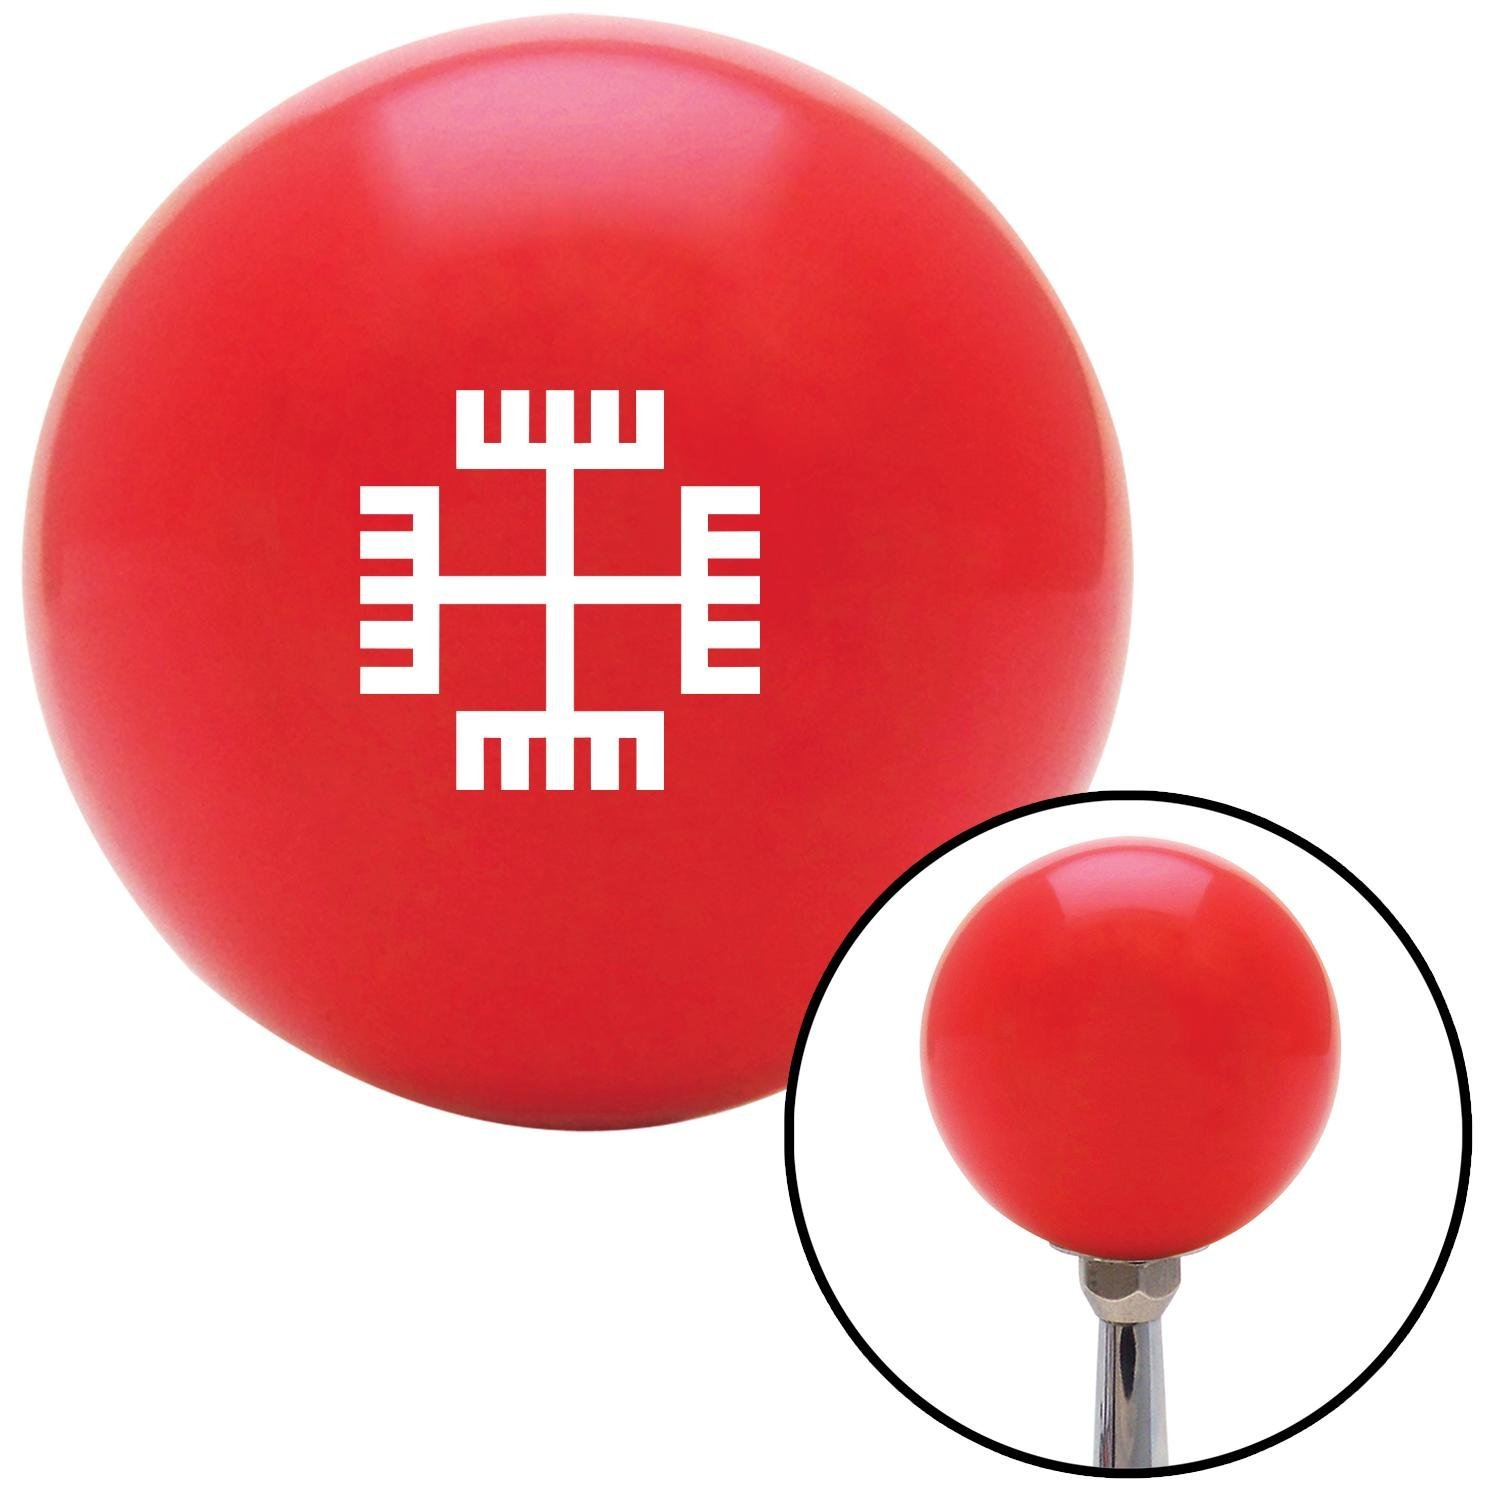 American Shifter 99450 Red Shift Knob with M16 x 1.5 Insert White Hands of God